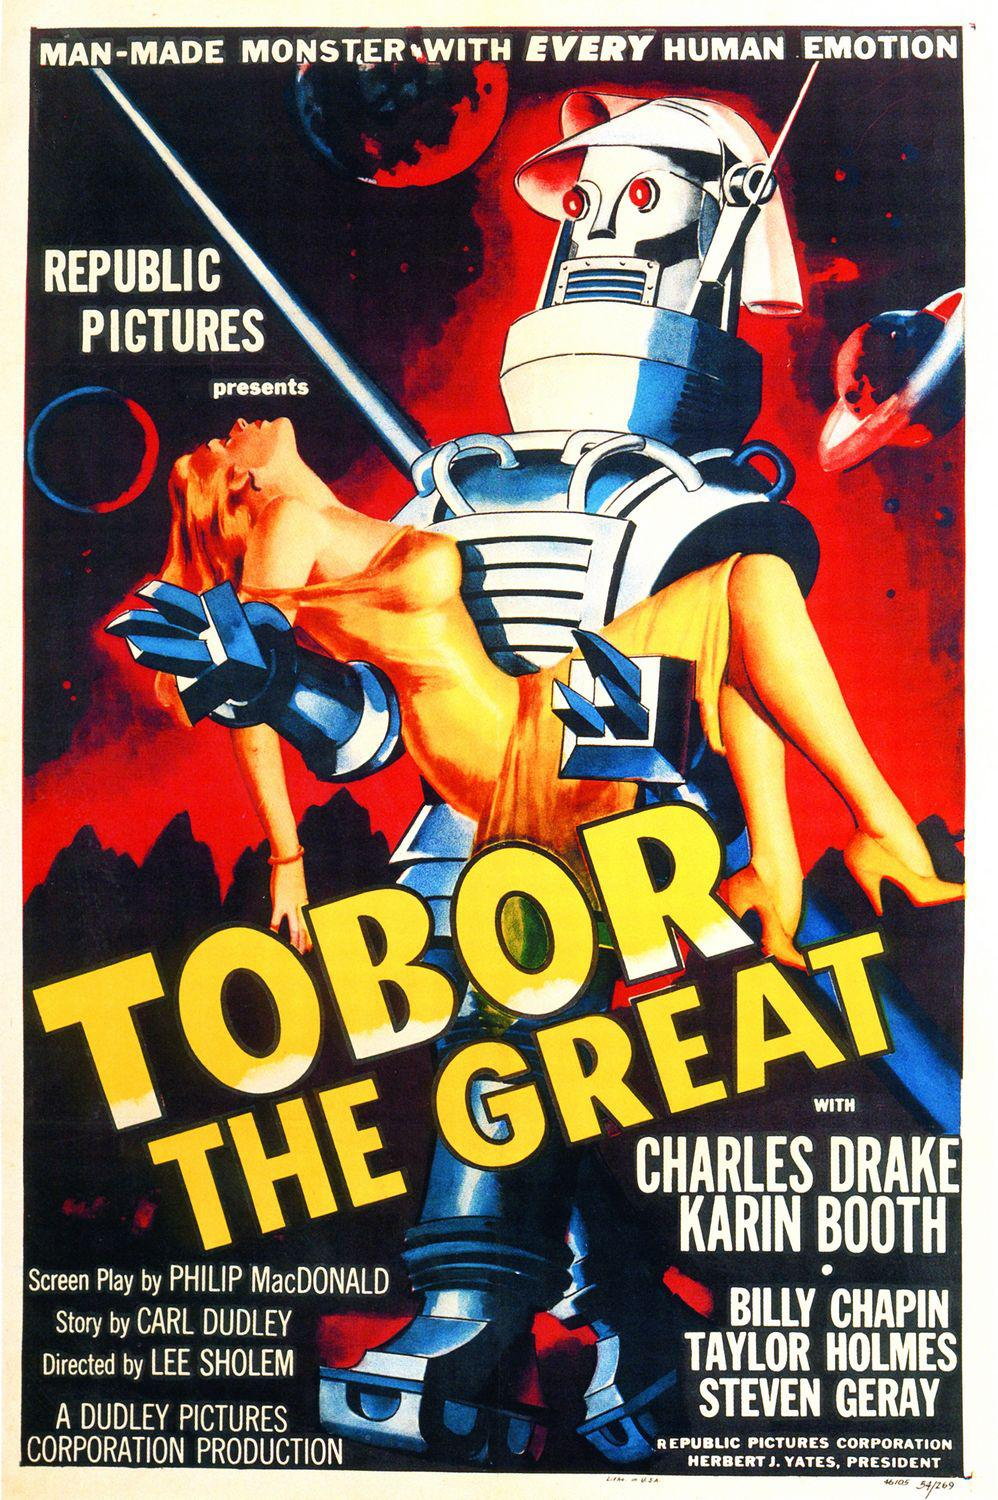 Film - Tobor the great - Robot Tobor - Man-made Monster with every human emotion